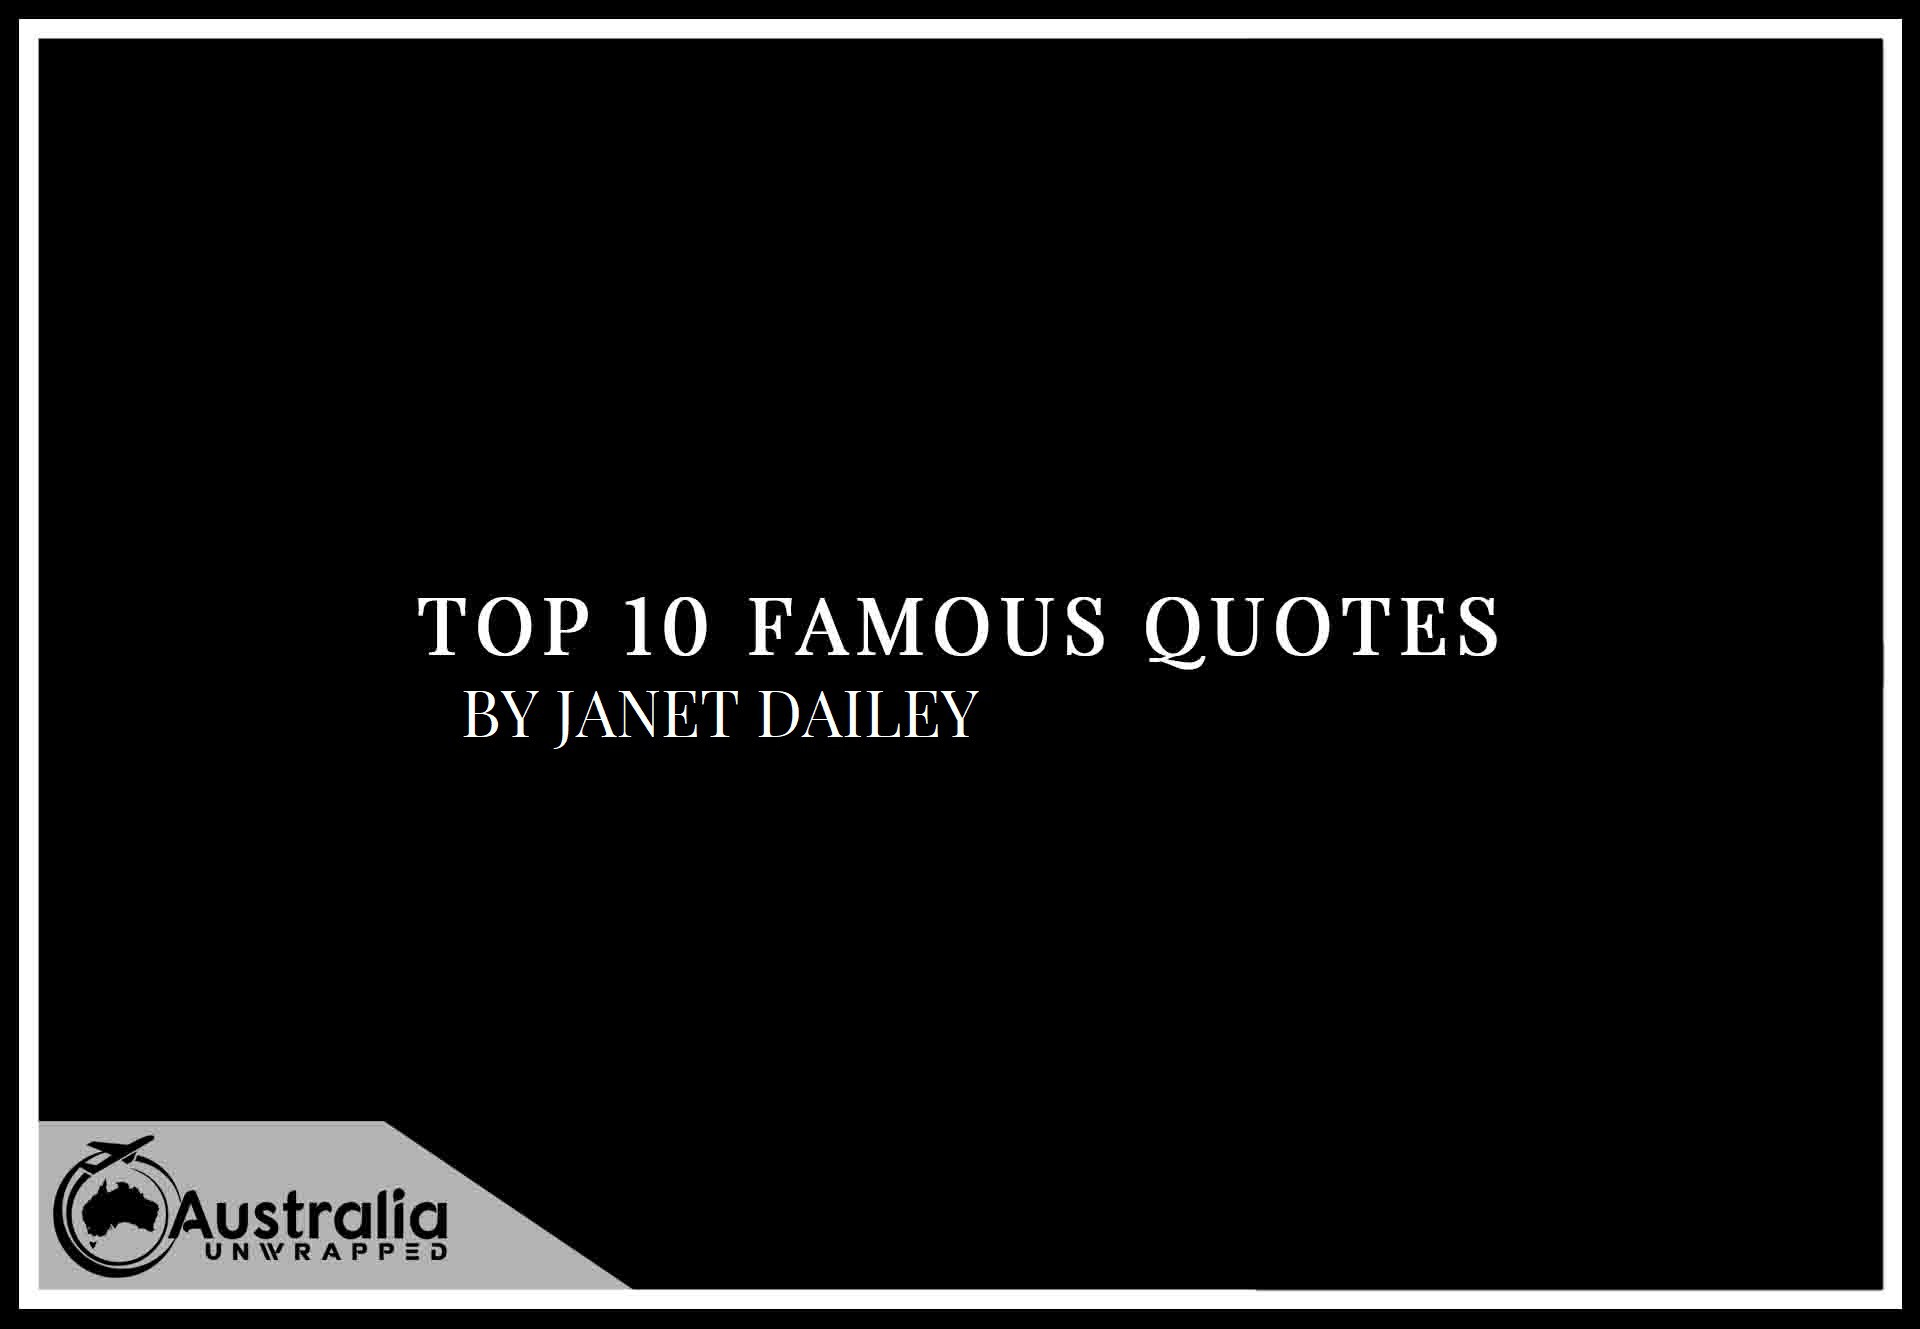 Top 10 Famous Quotes by Author Janet Dailey